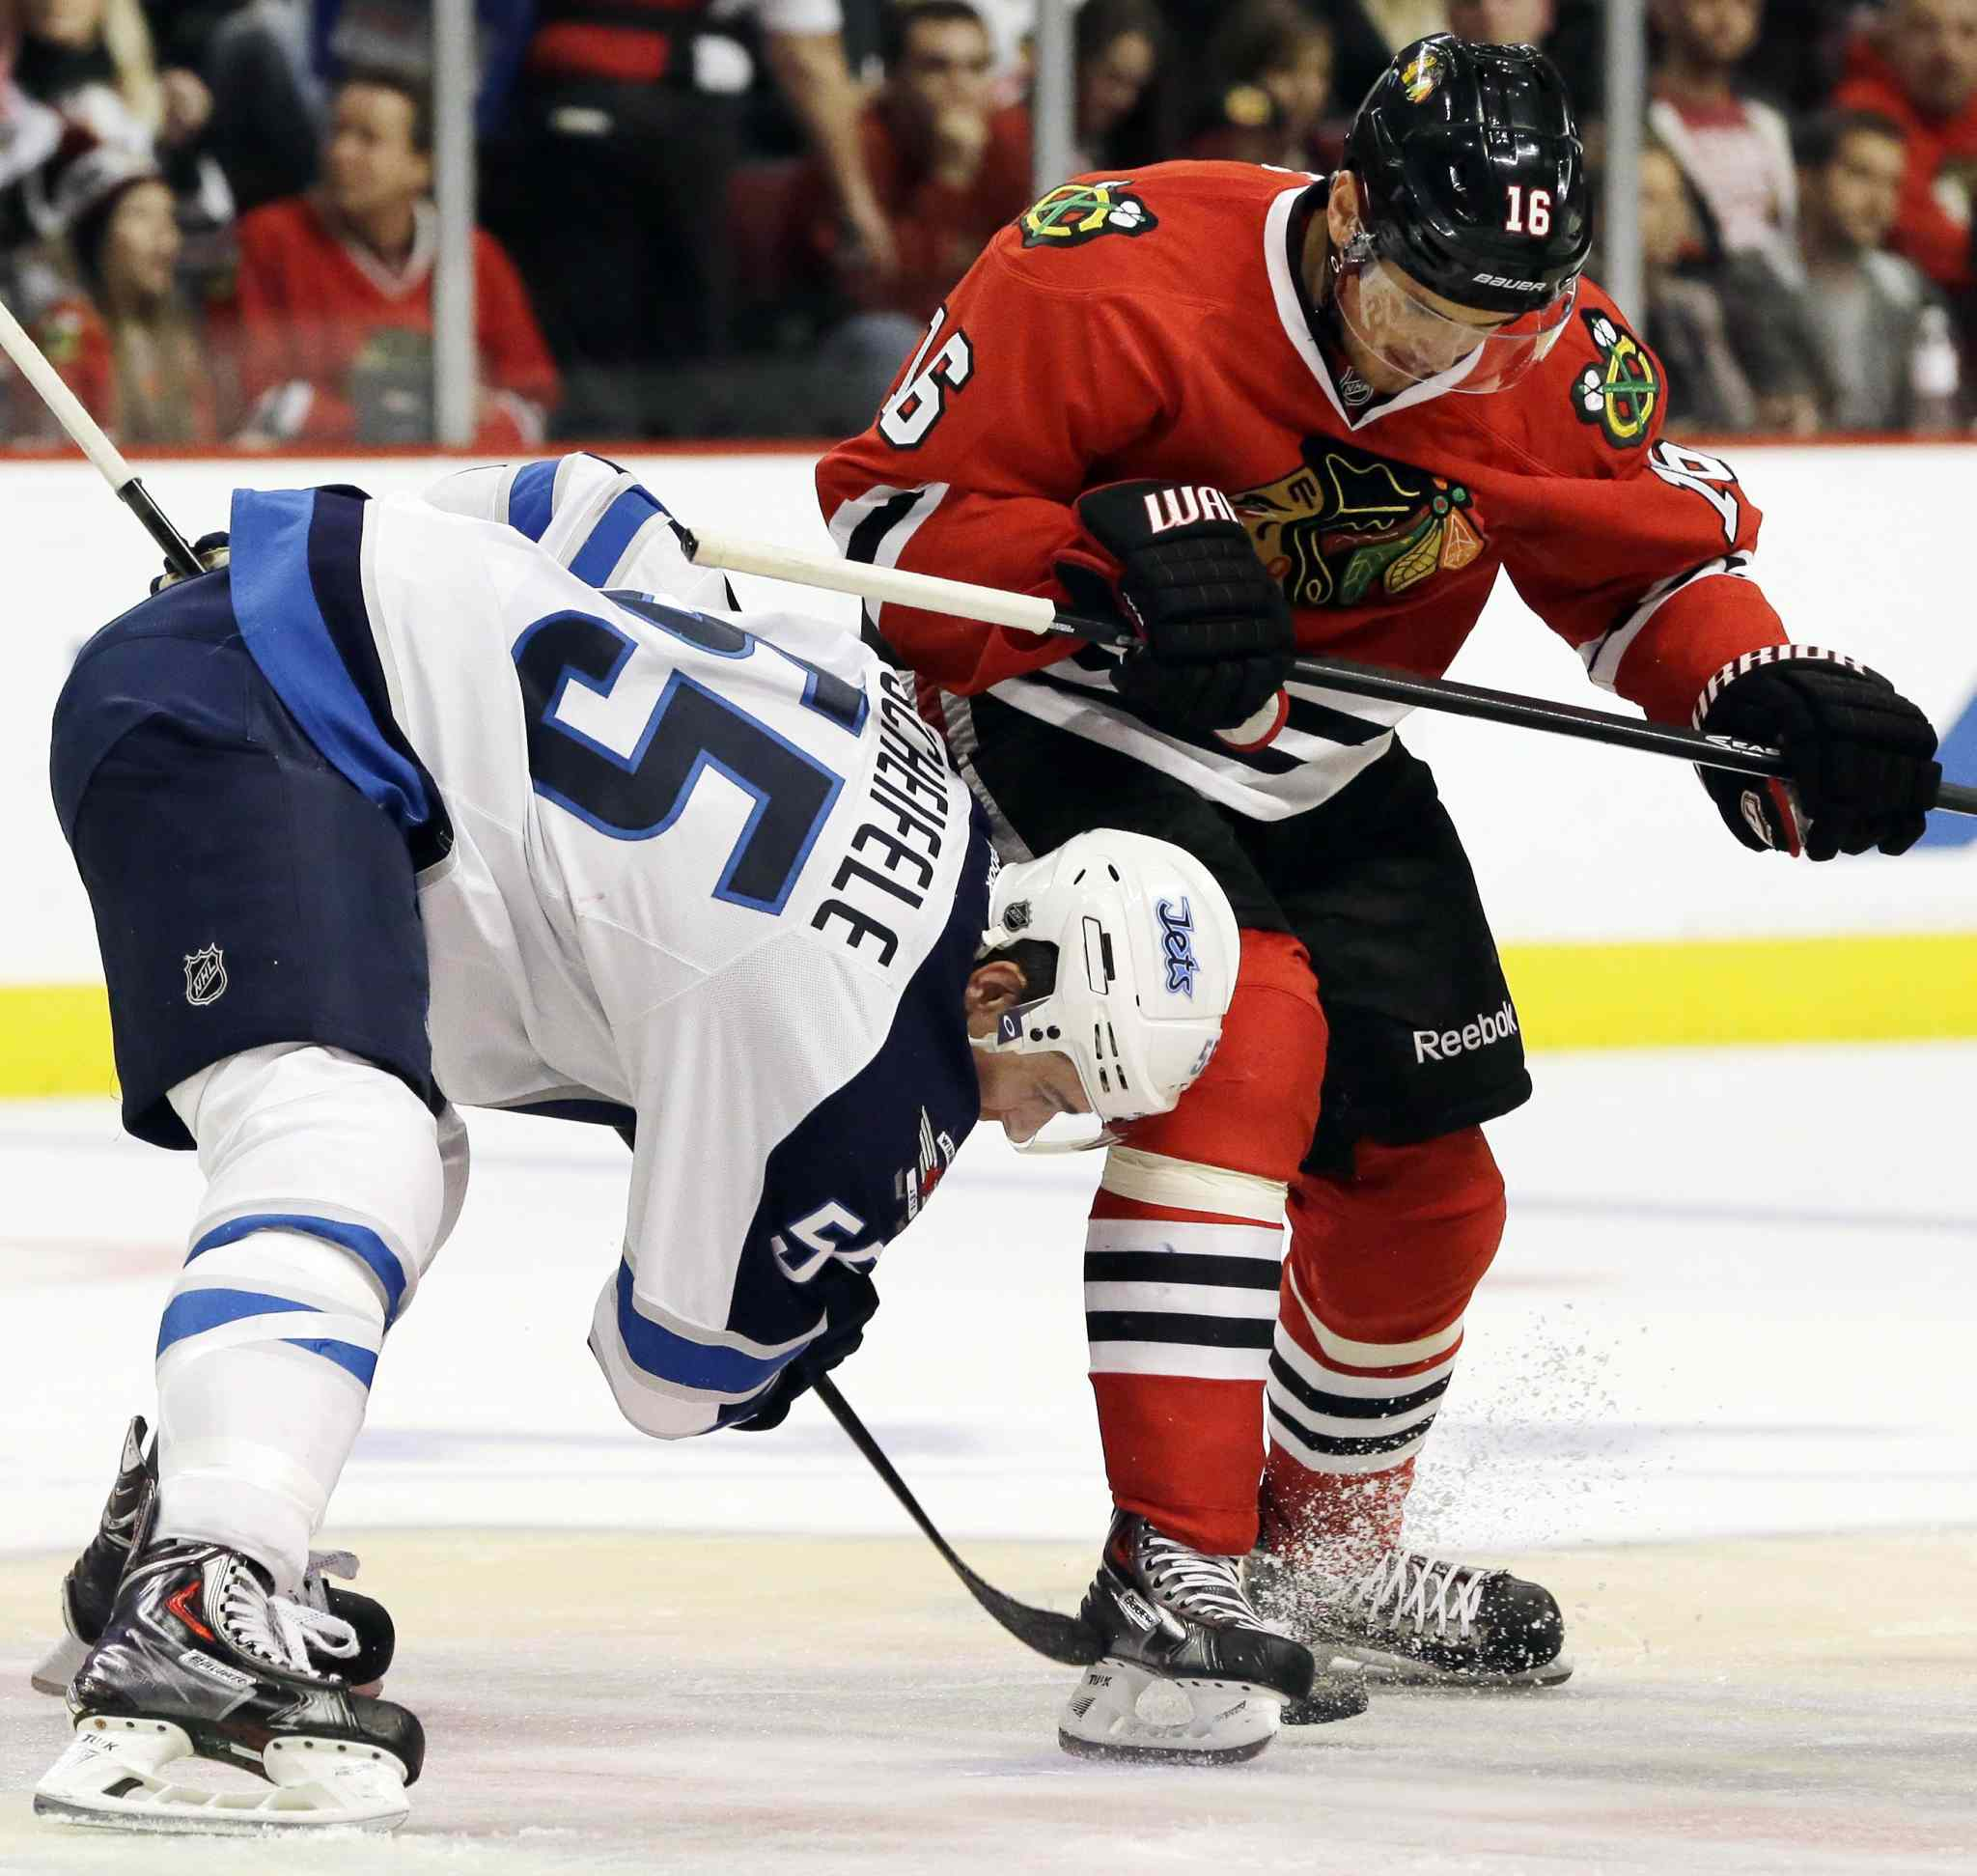 Chicago Blackhawks' Marcus Kruger (right) and Winnipeg Jets' Mark Scheifele battle for the puck during the second period.